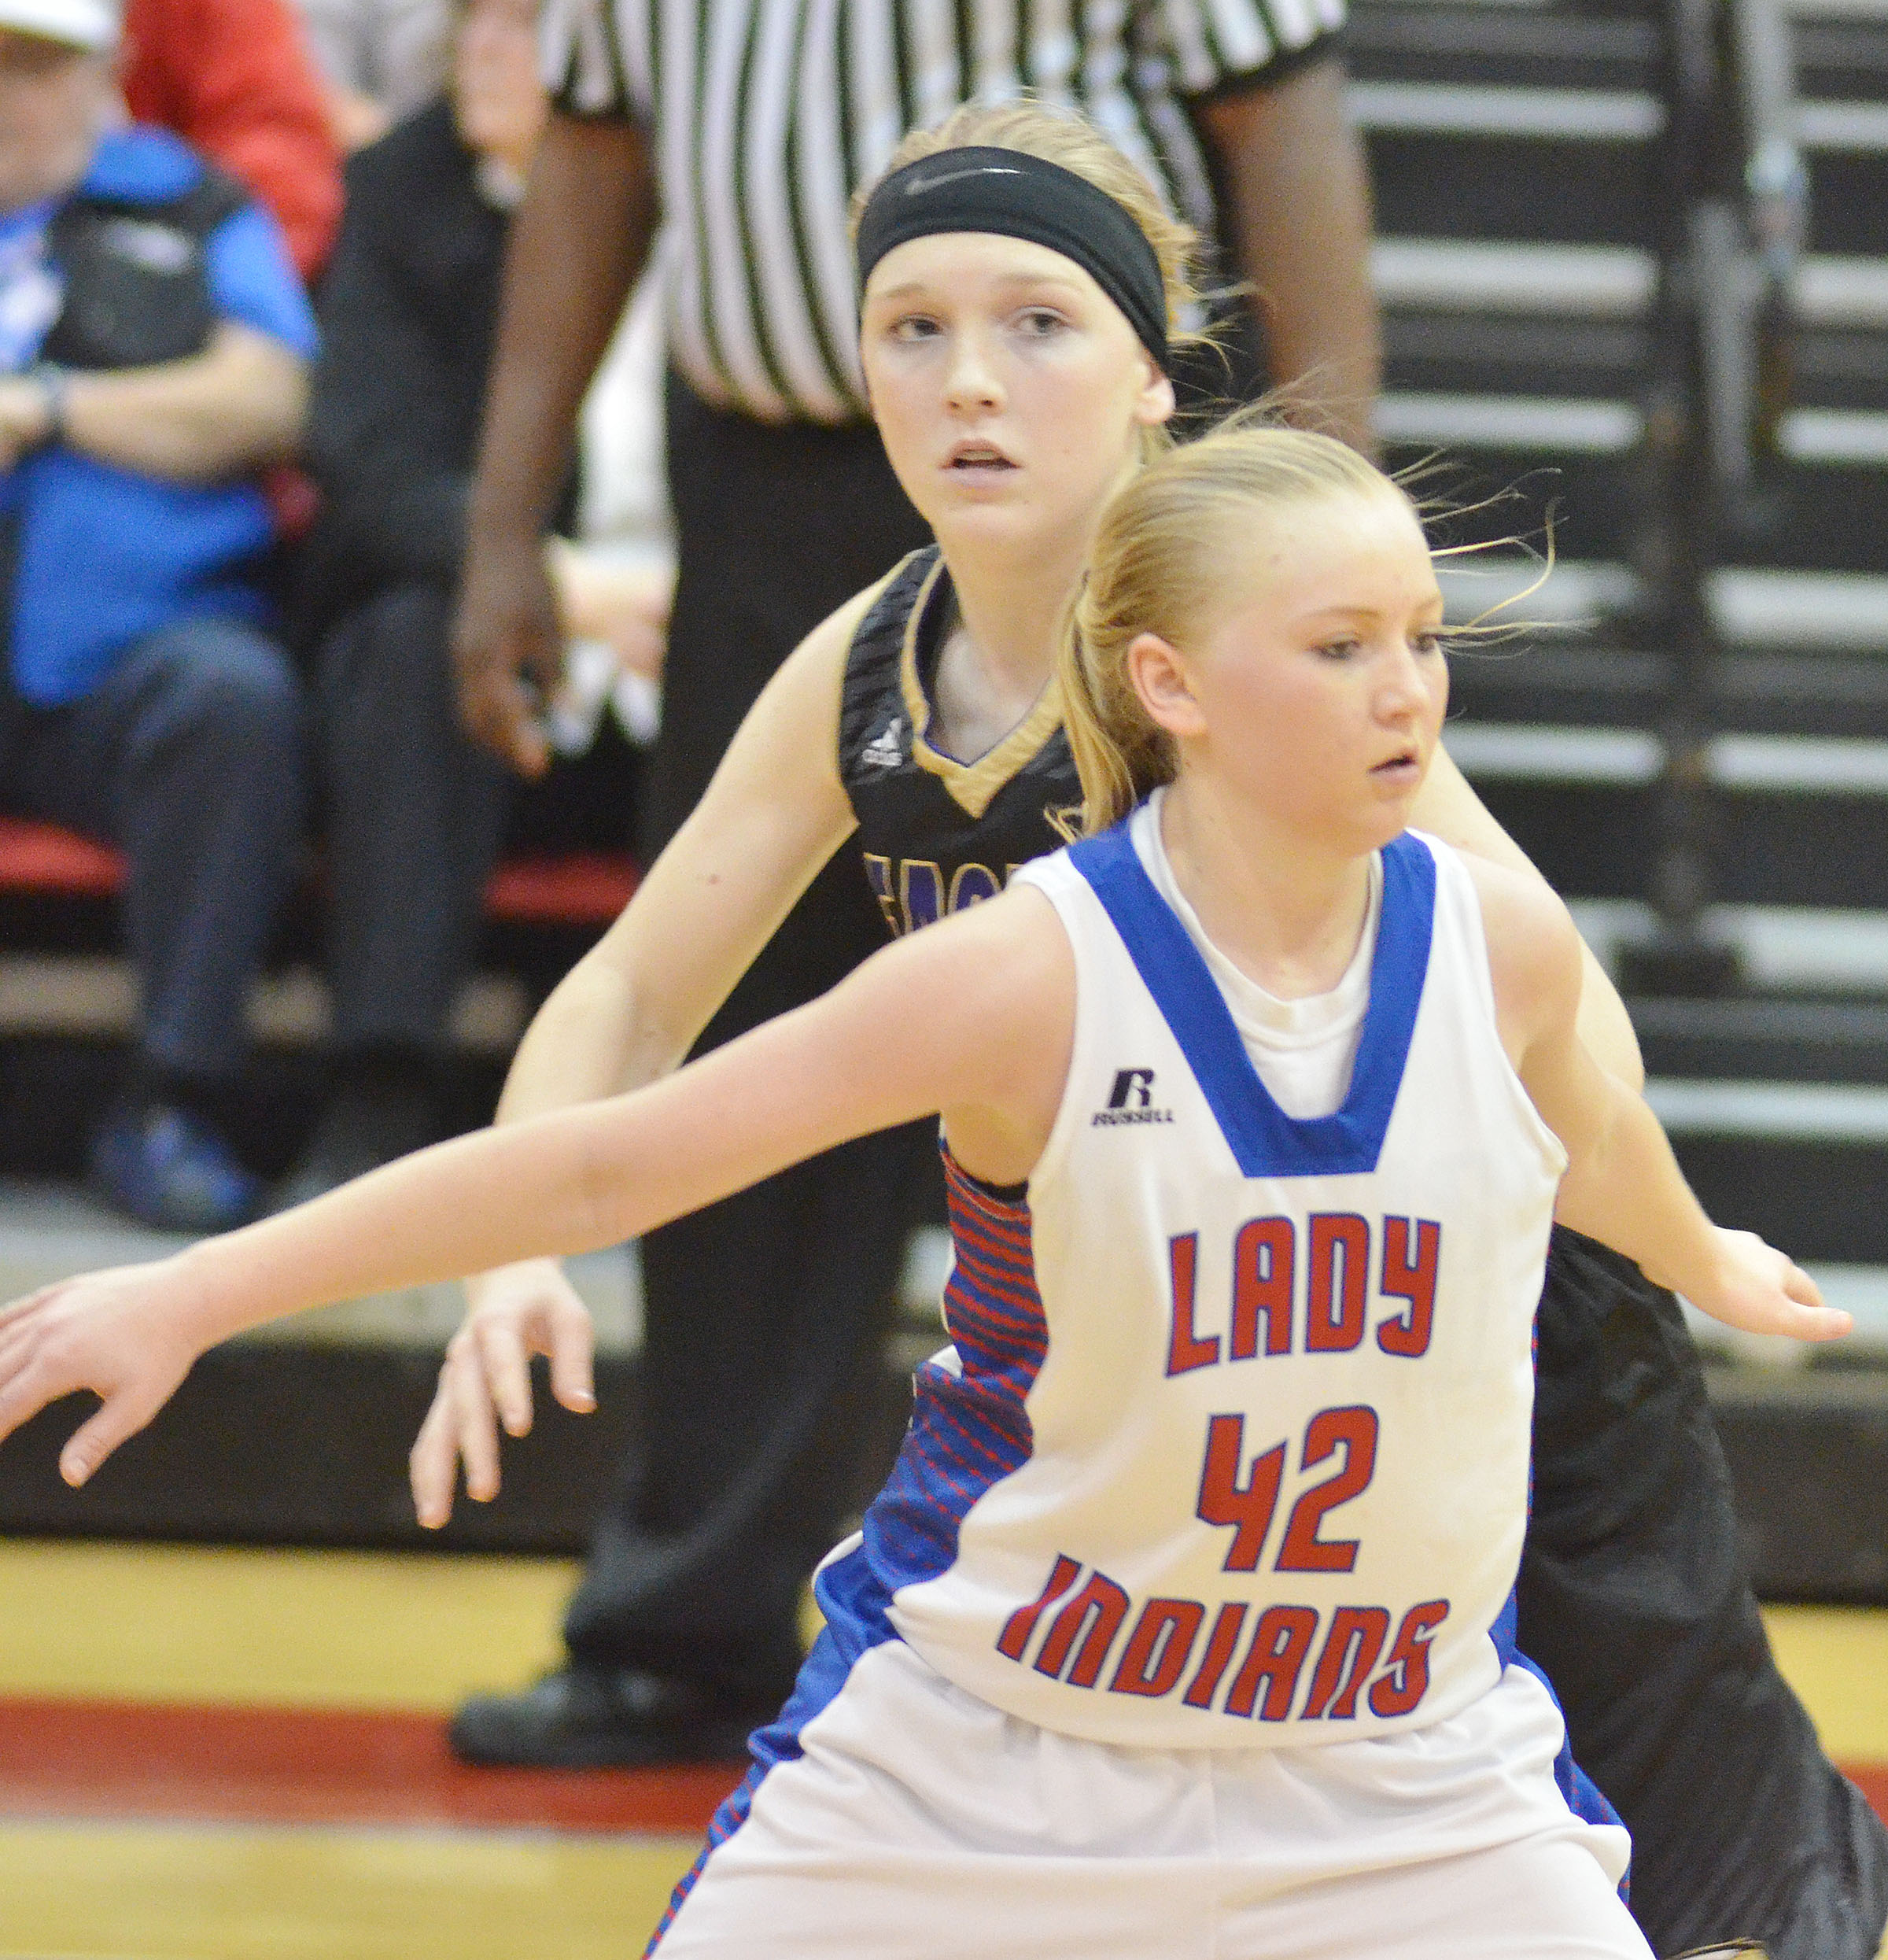 Campbellsville Middle School eighth-grader Catlyn Clausen looks for the ball.